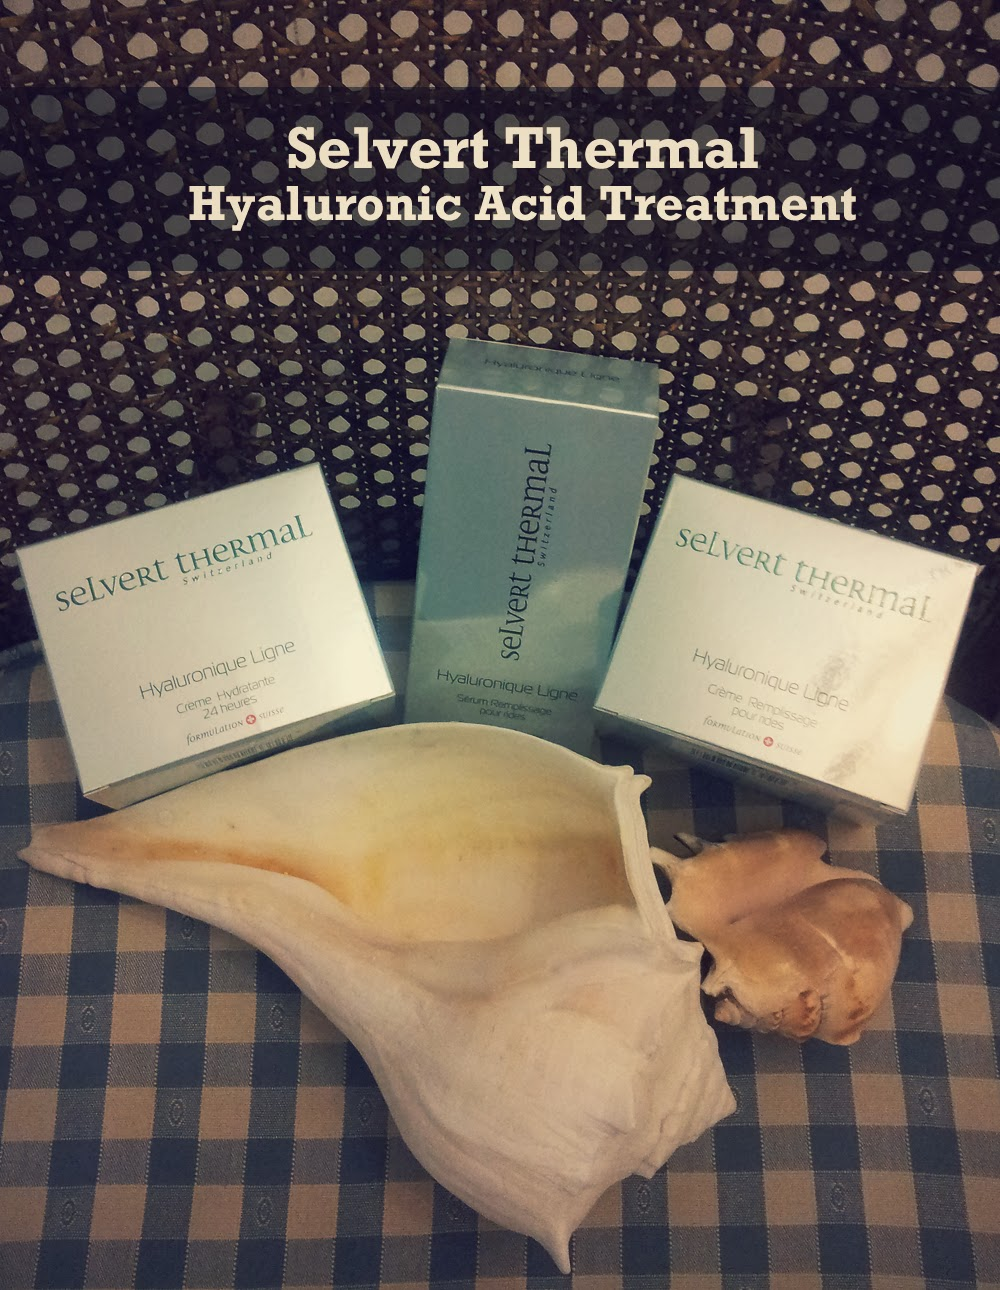 Selvert+Thermal+Hyaluronic+Acid+Treatment